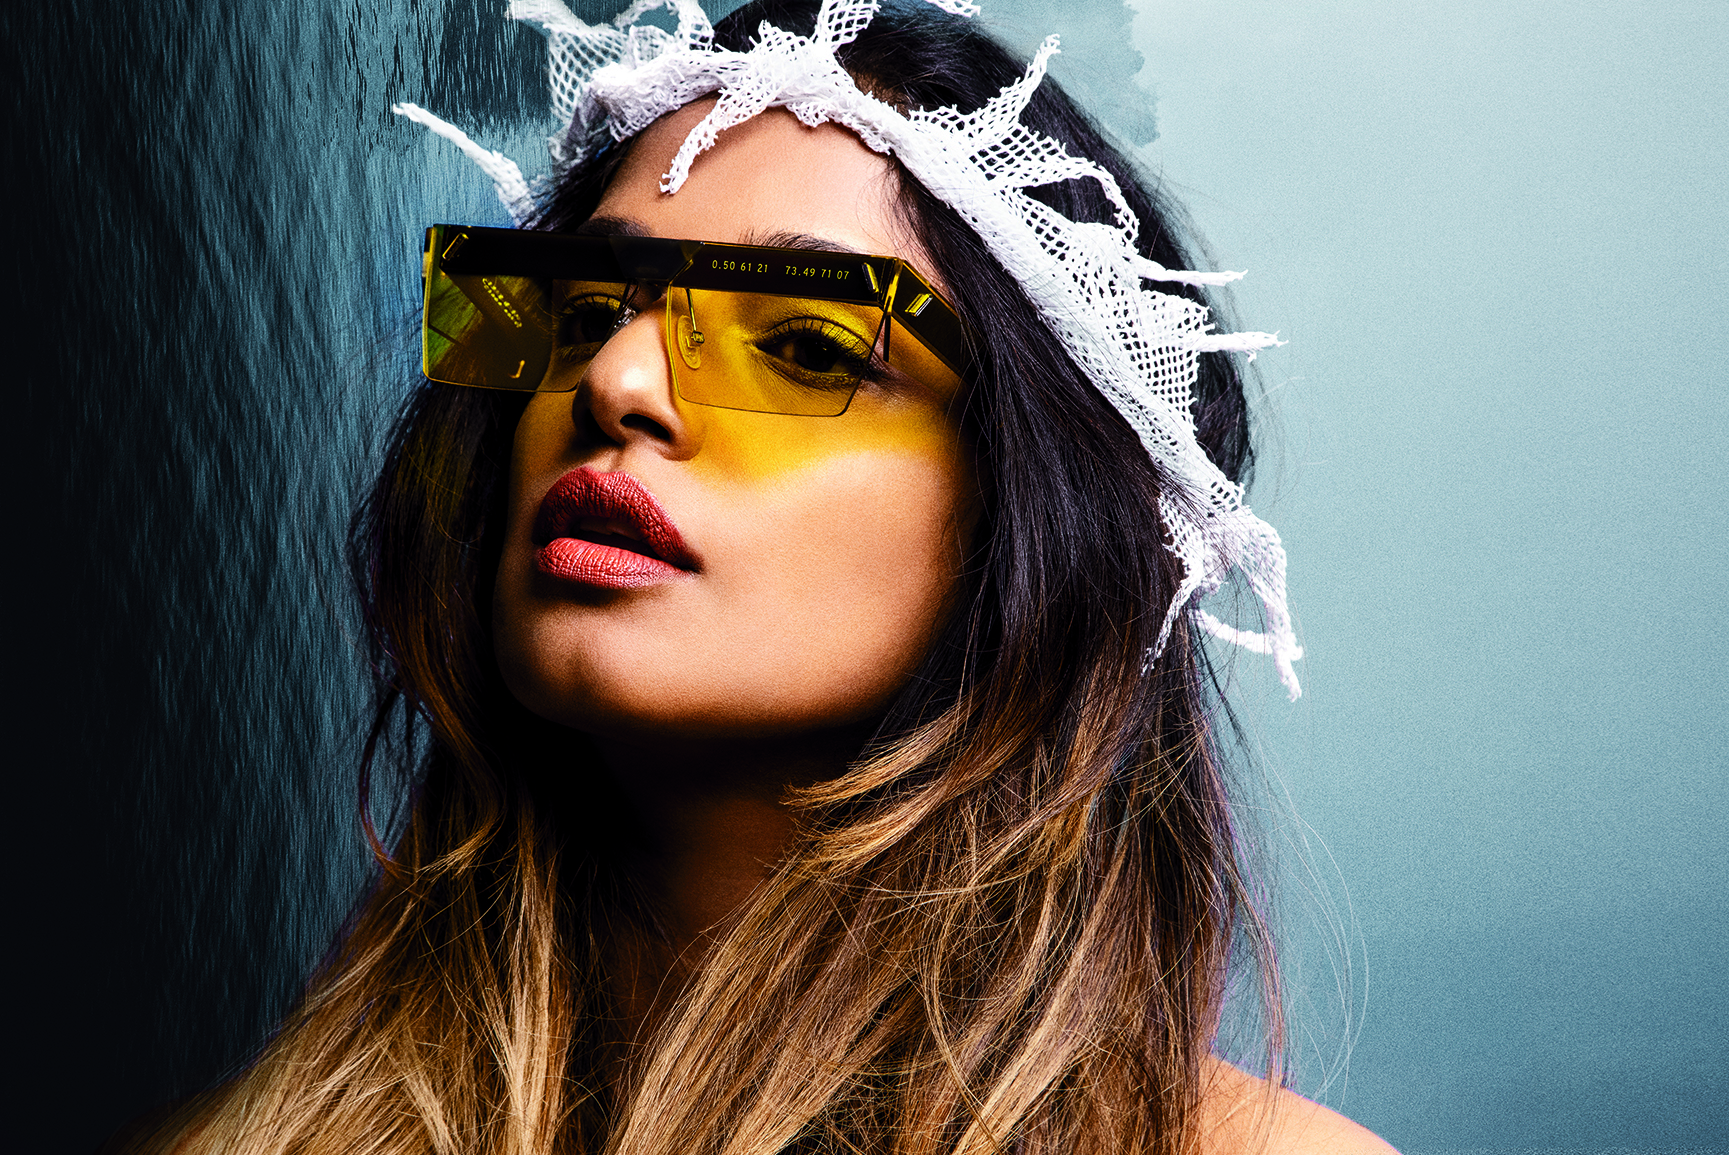 M.I.A. wearing the sunglasses she designed with Parley for the Oceans's Clean Waves brand